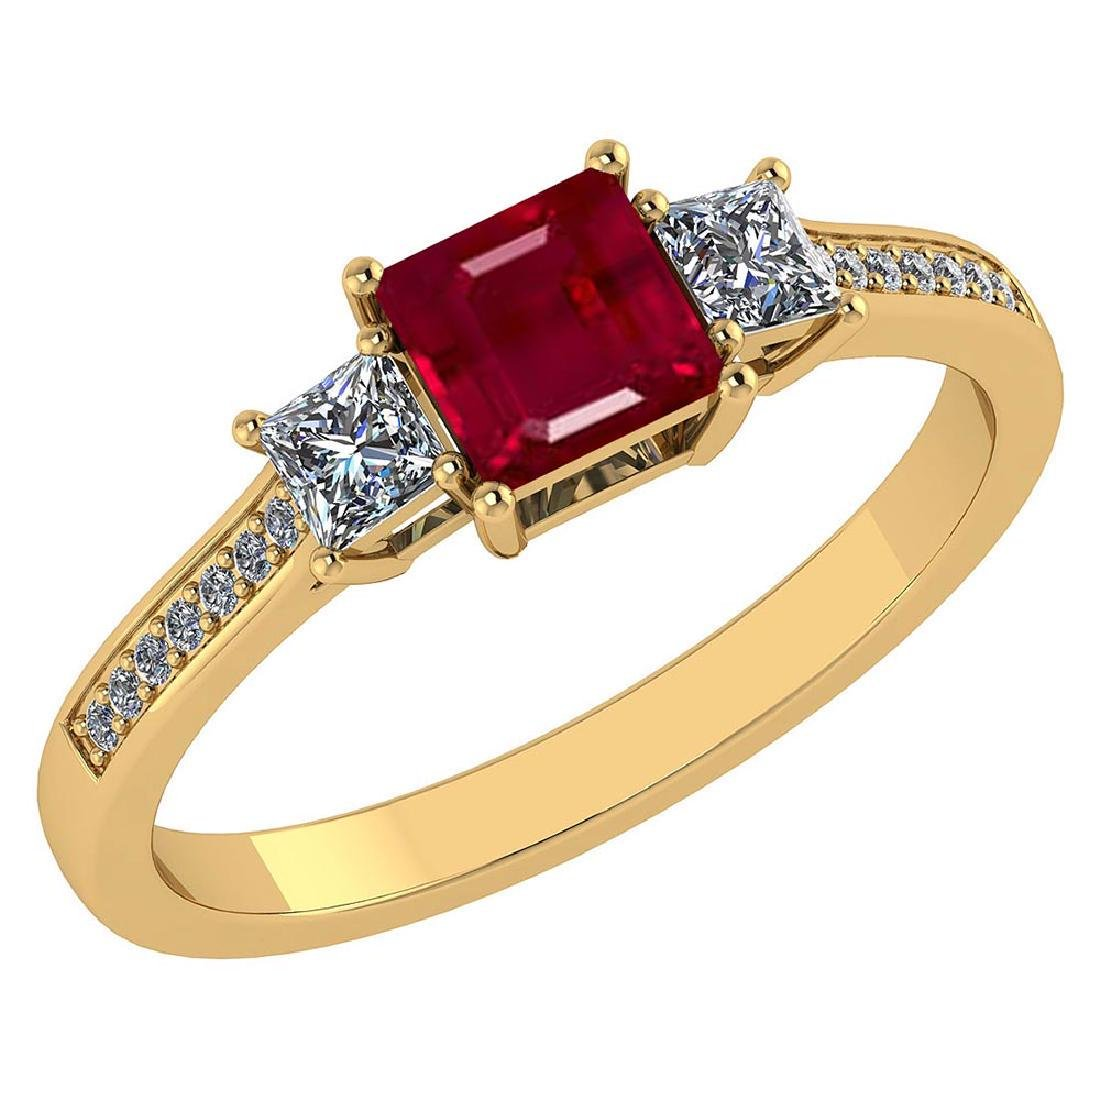 Certified 1.18 CTW Genuine Ruby And Diamond 14K Yellow